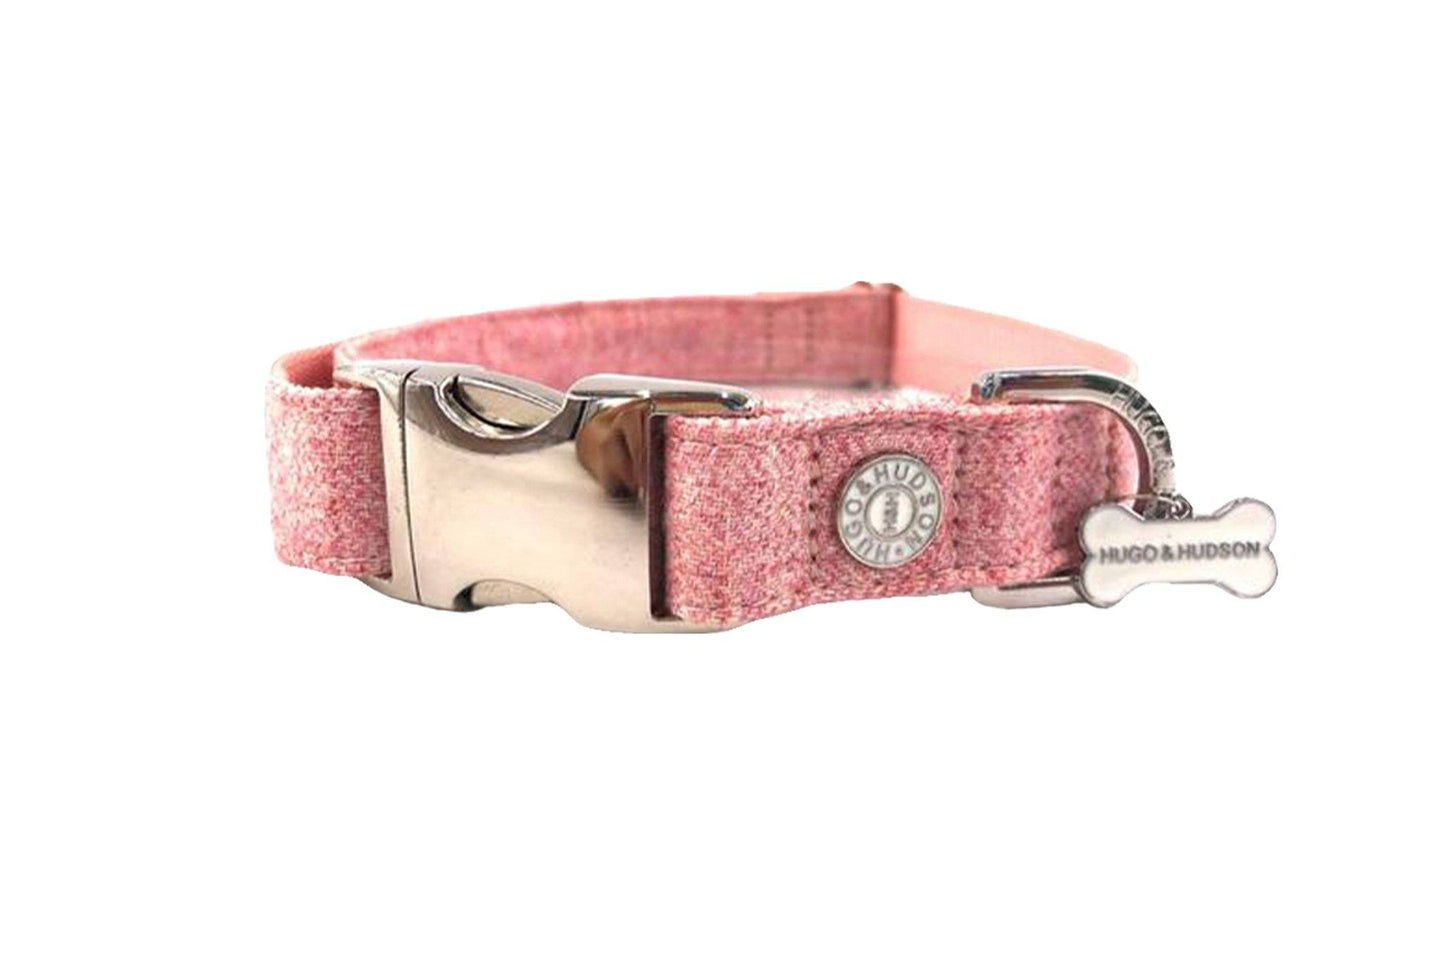 Hugo & Hudson Bone Clasp Collar - Hugo & Hudson Pink Tweed Metal Clasp Collar